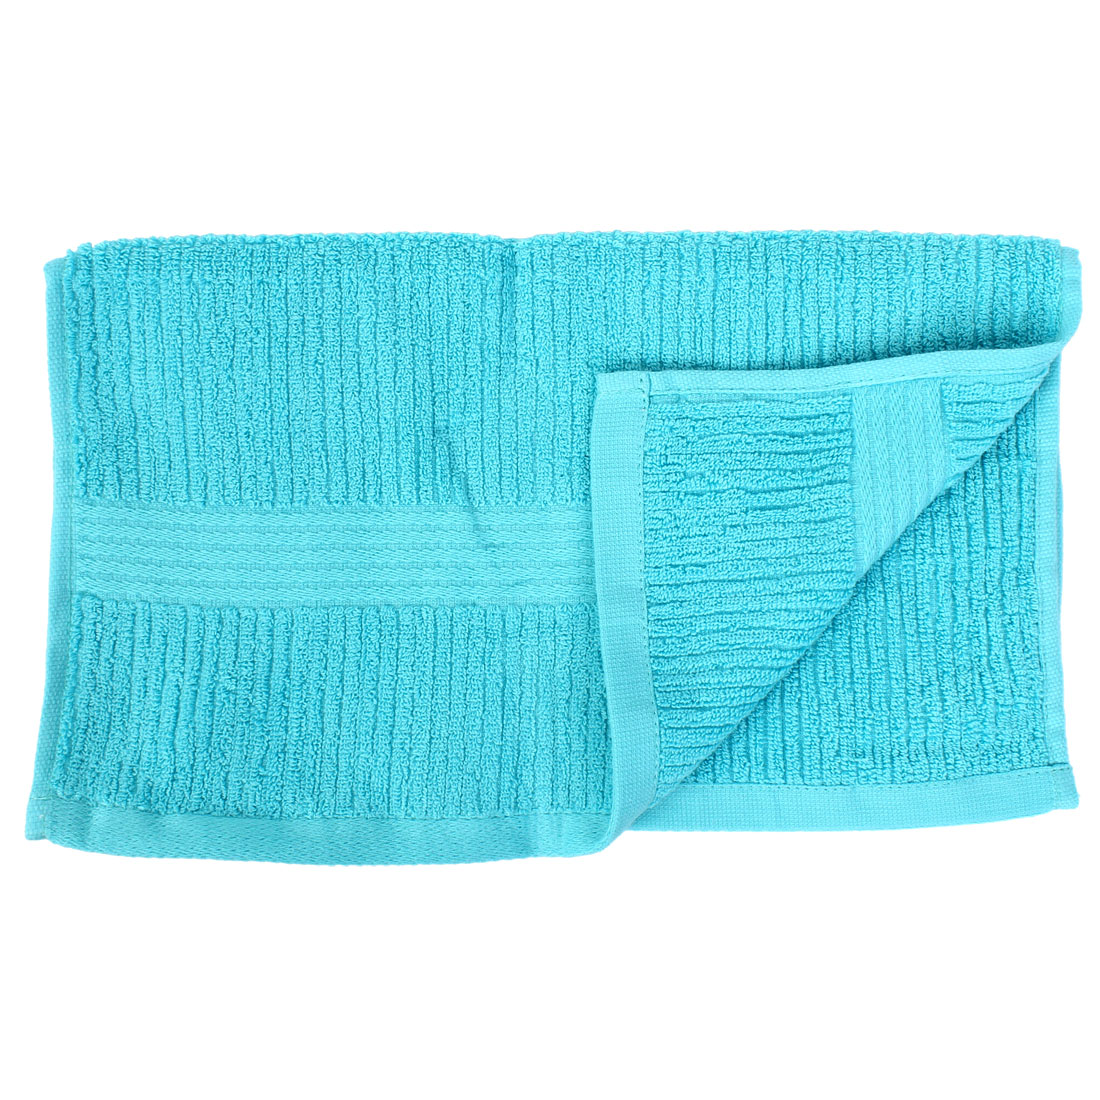 Home Washroom Cotton Blend Shower Hand Face Washing Terry Towels Washcloths